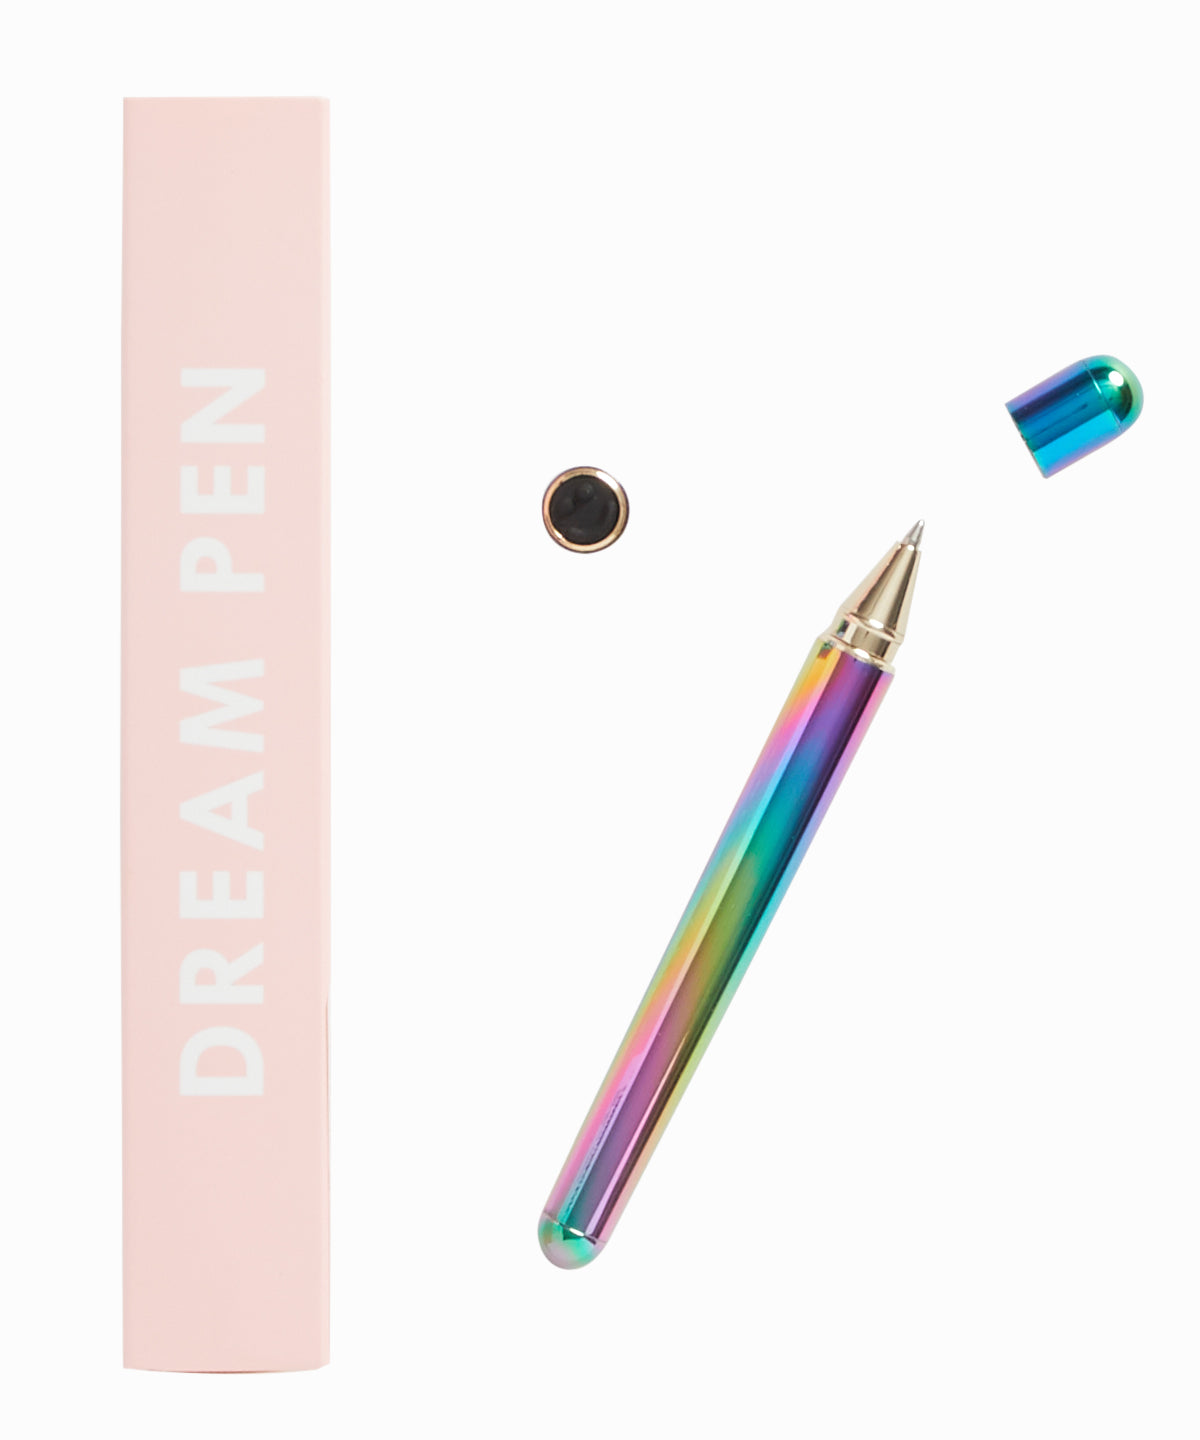 Dream Pen